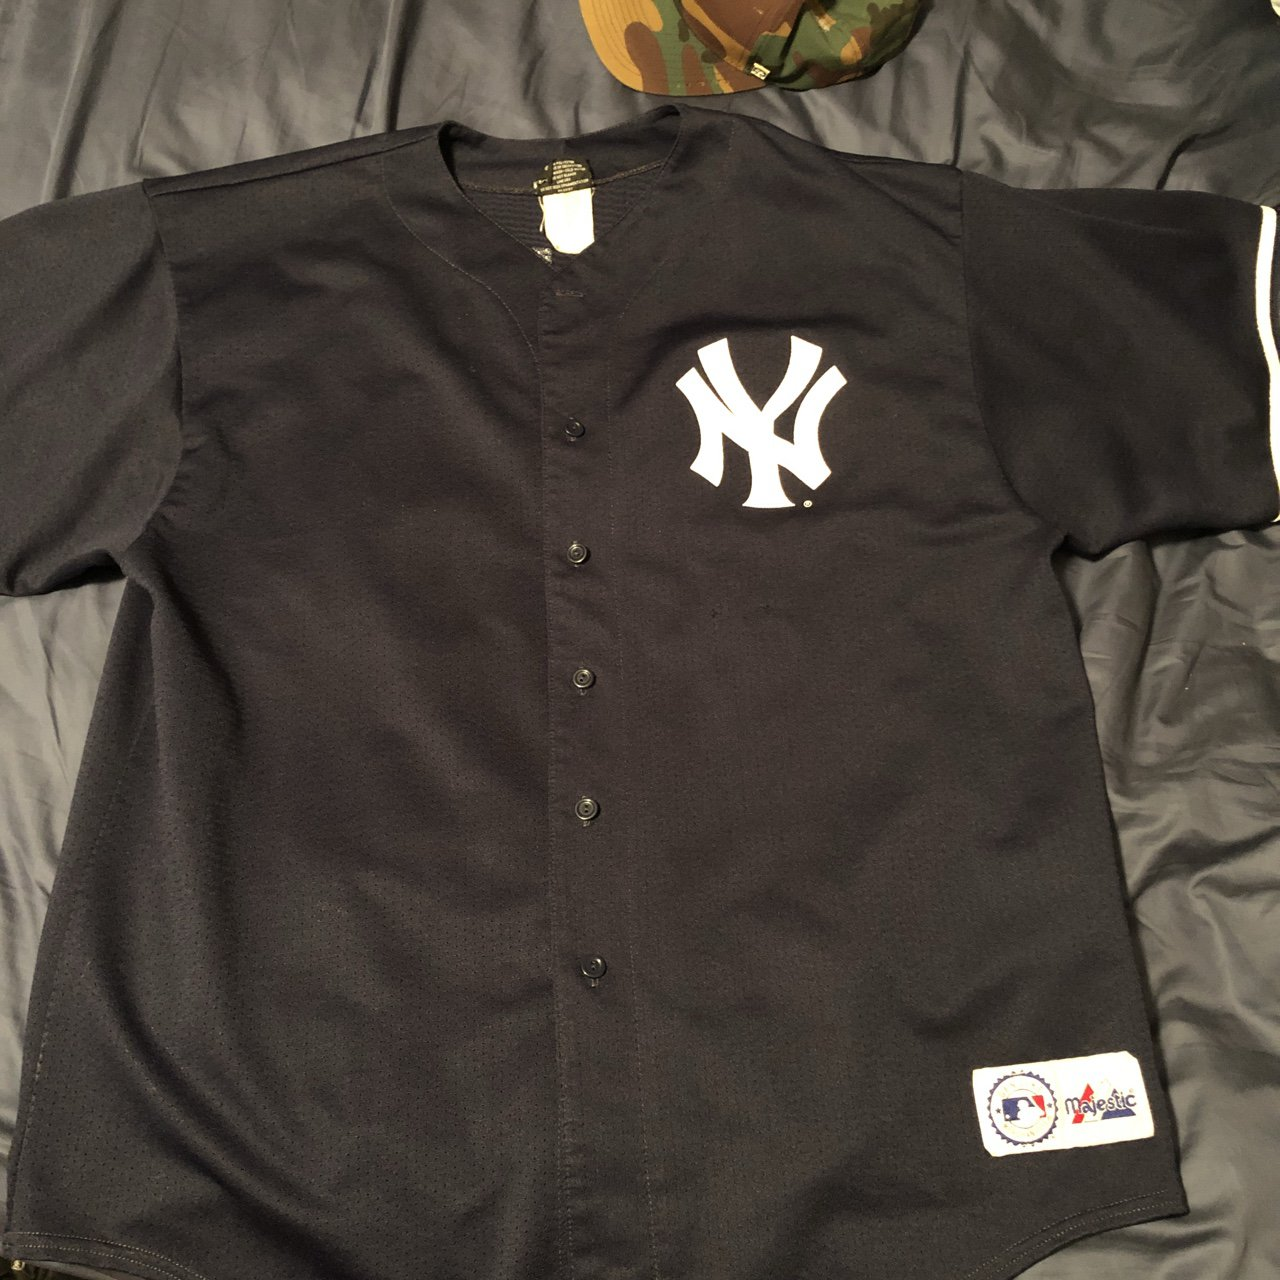 Near mint condition vintage Old school majestic New York 51 - Depop e495b37009b